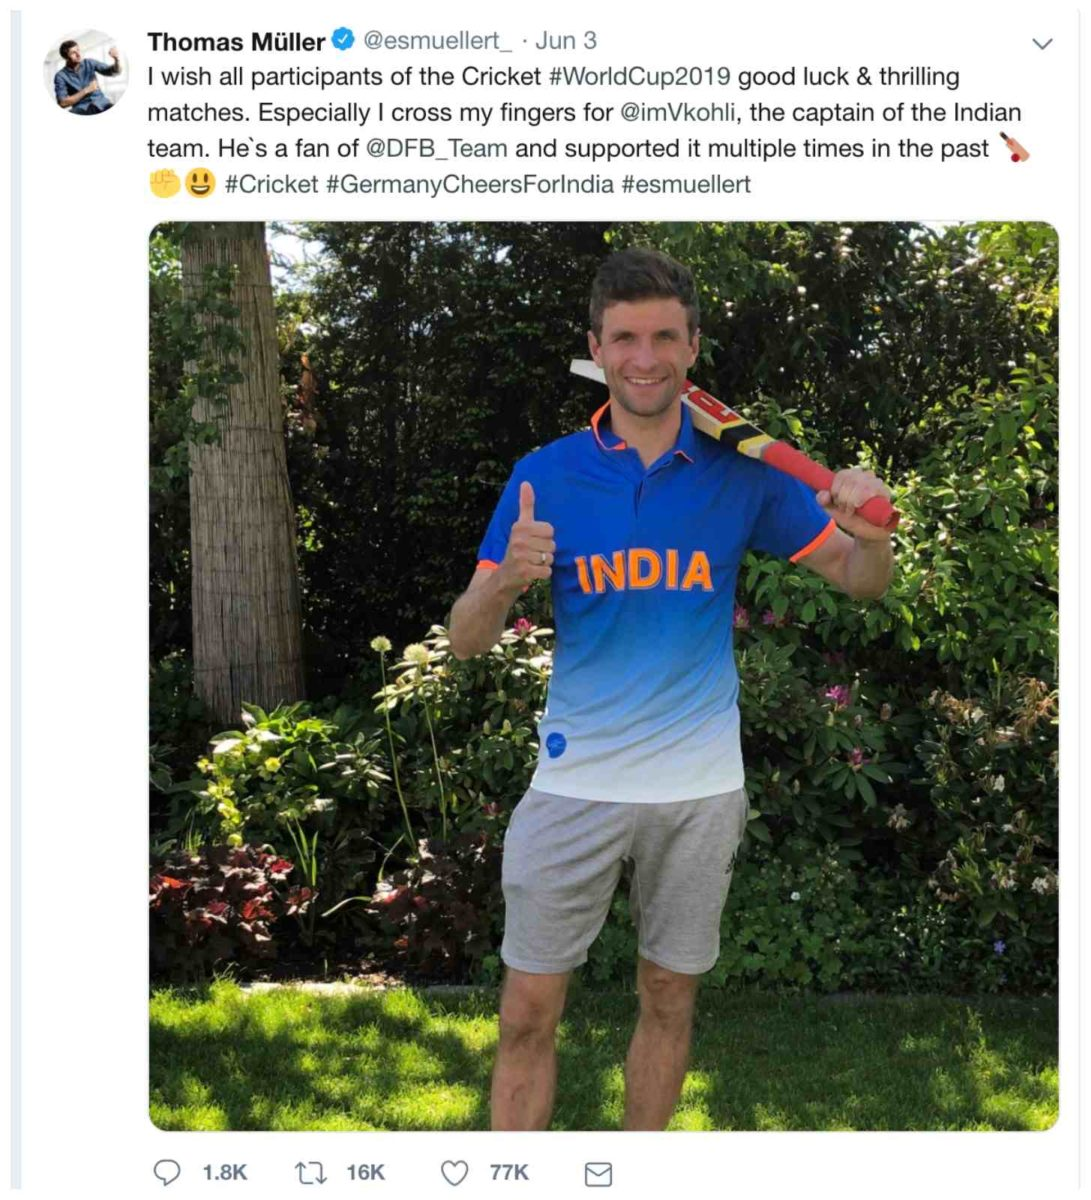 Germany cheers for india 2